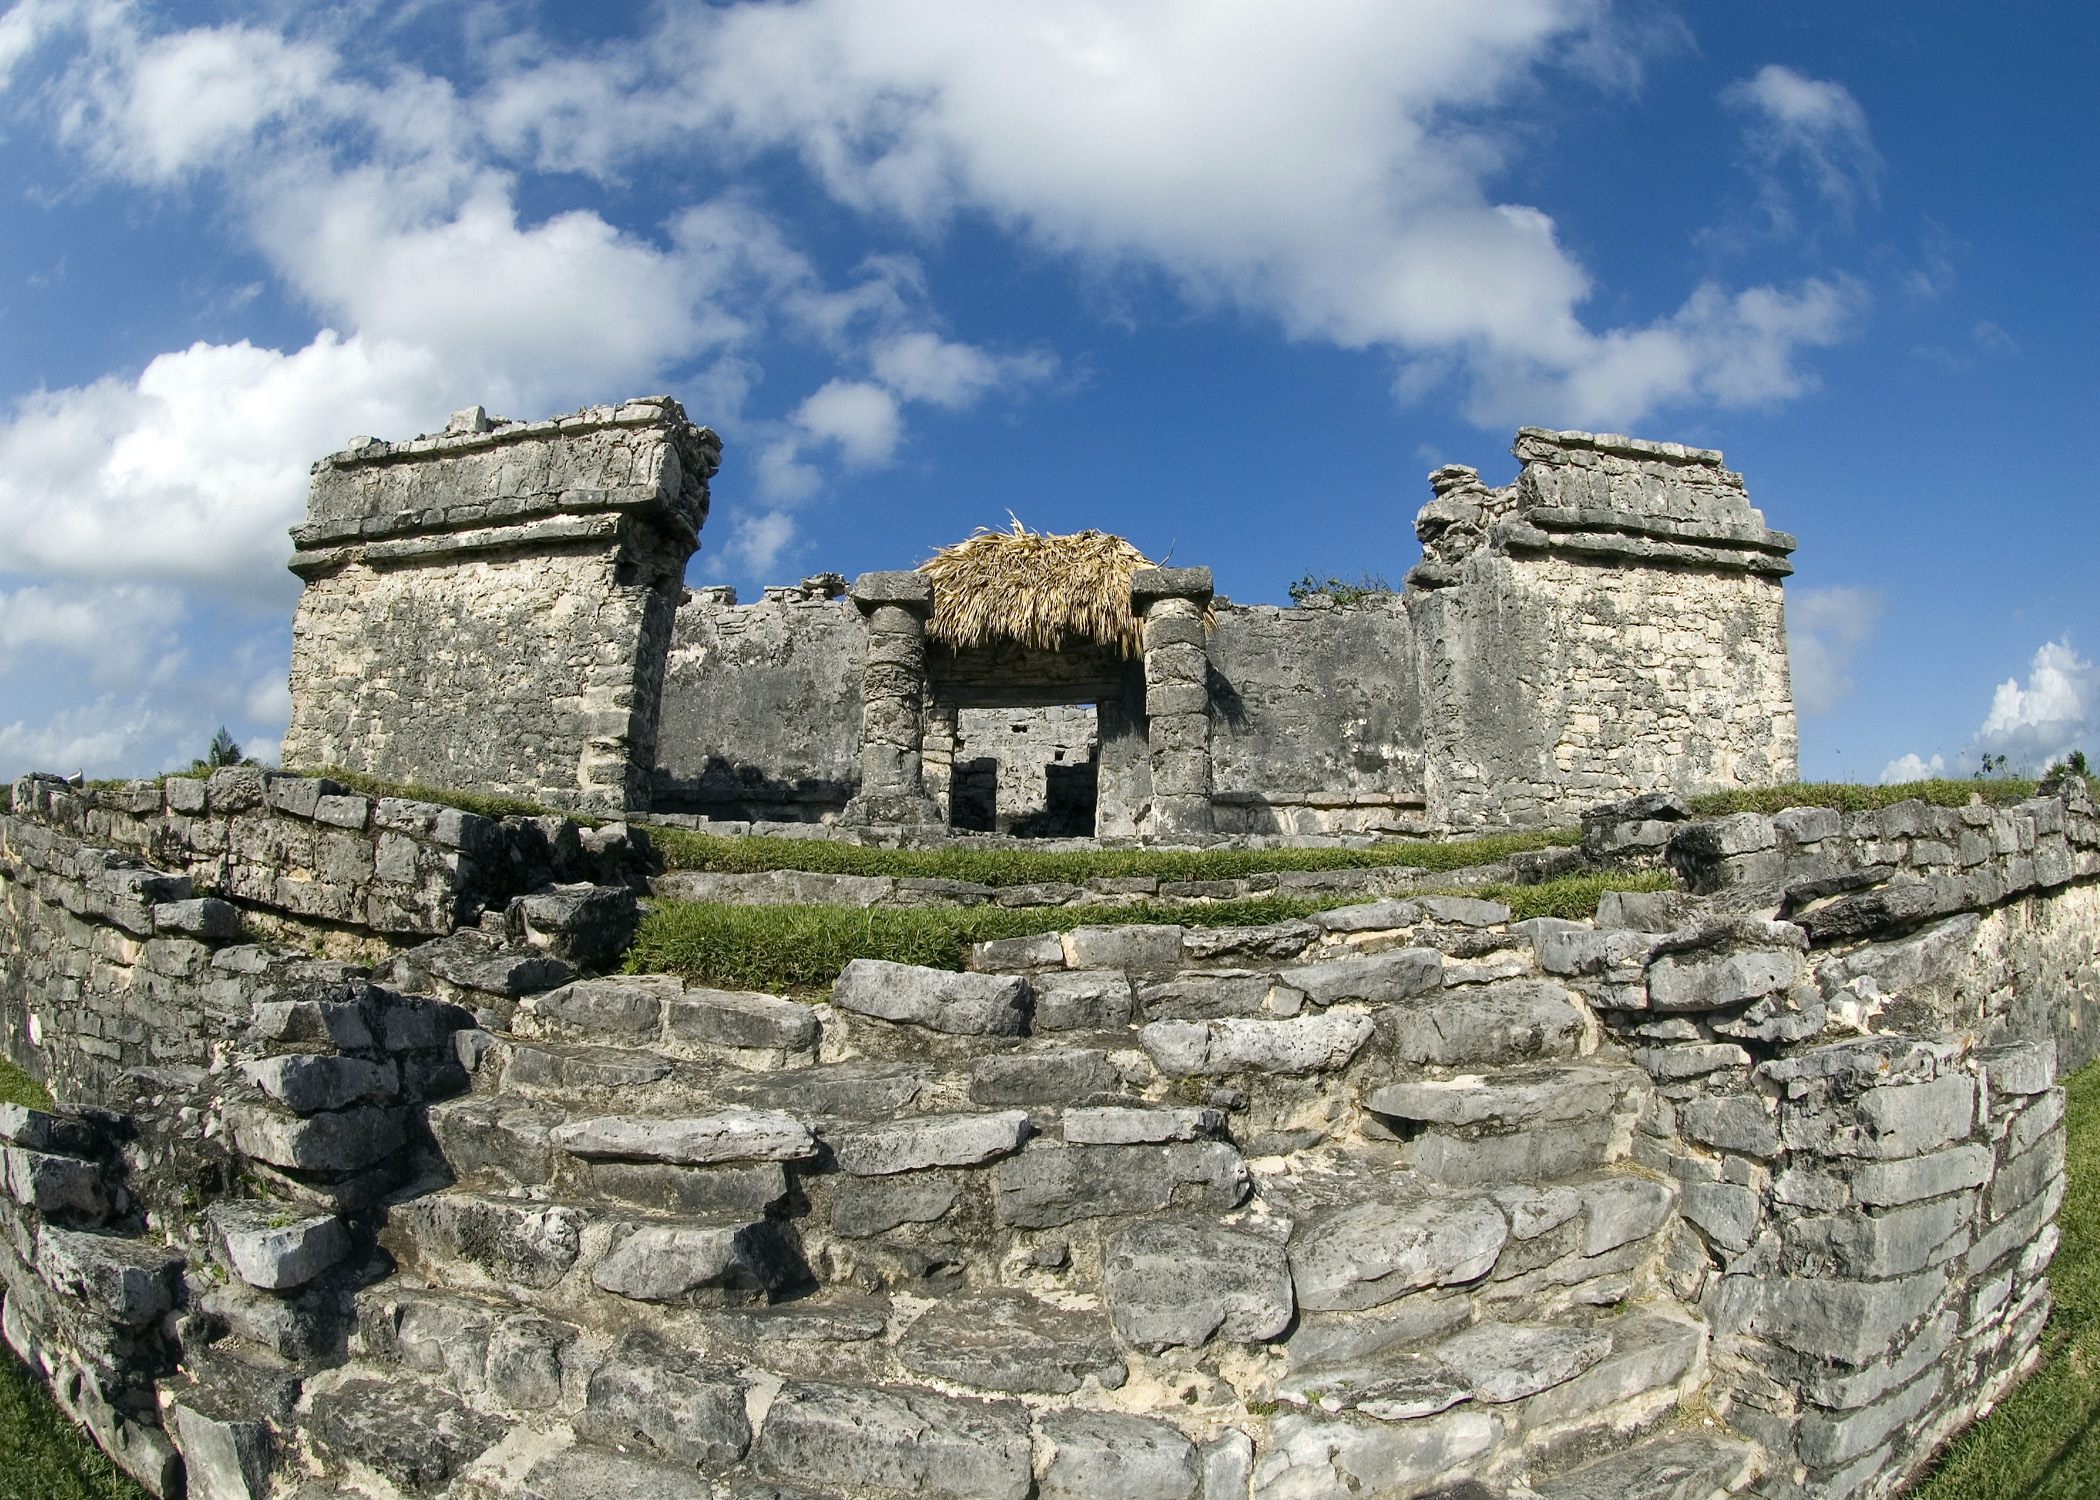 House of the Halach Uinic (Tulum)